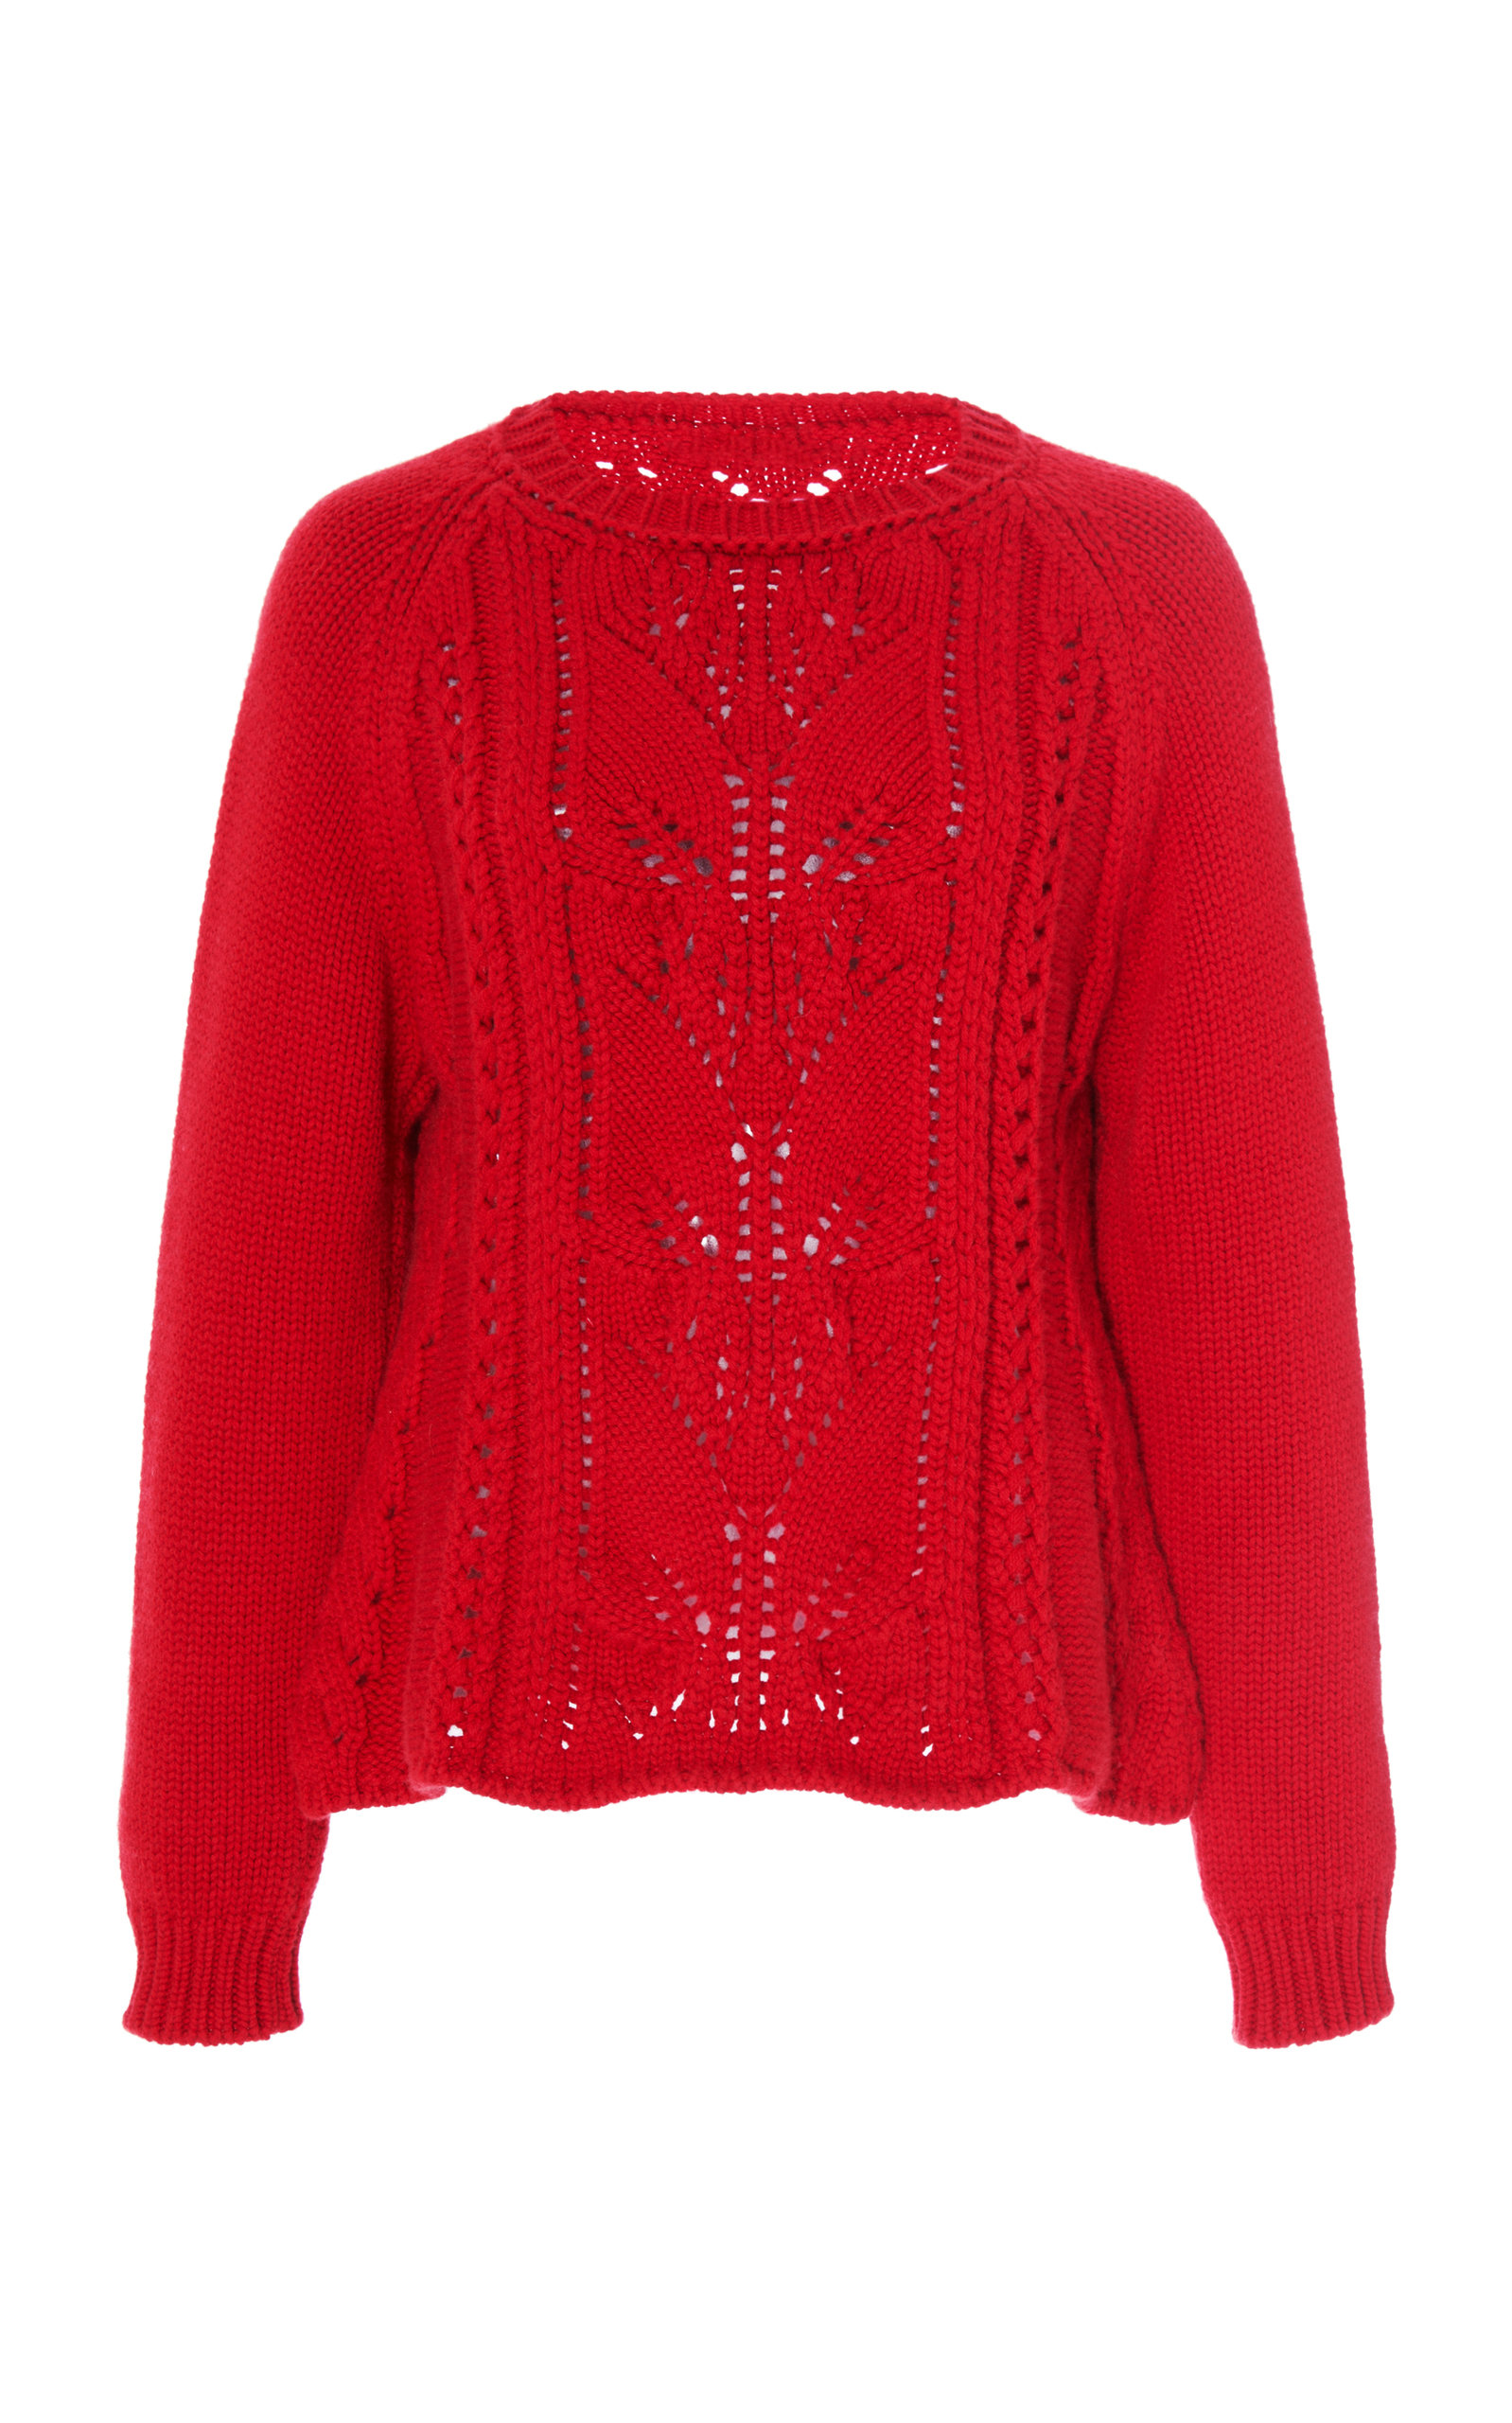 Brock Collection OMEOPATA WOOL CASHMERE SWEATER